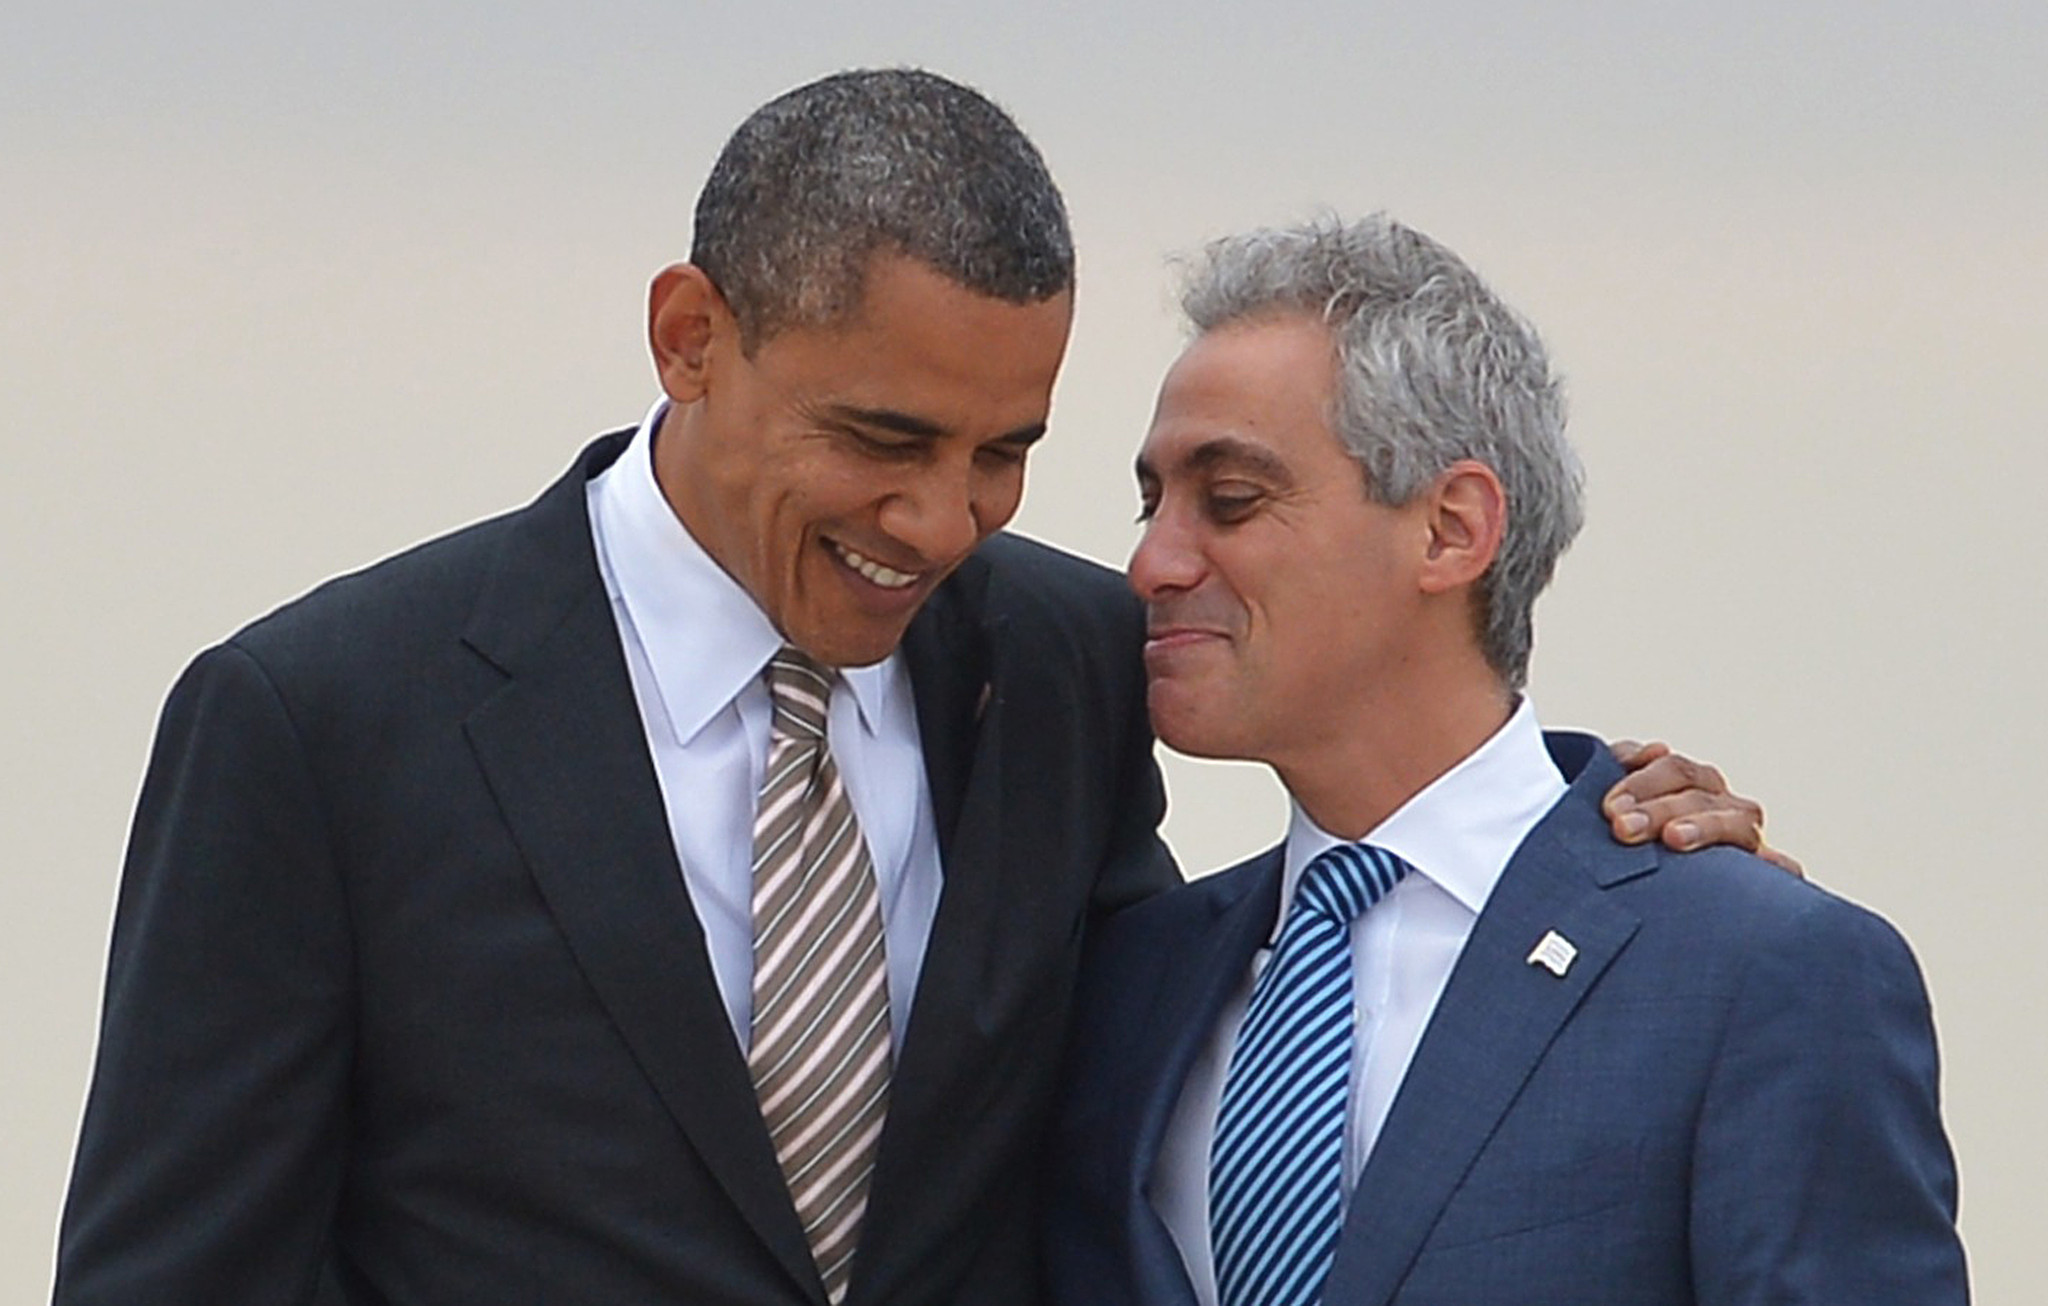 http://www.trbimg.com/img-579a8c22/turbine/ct-rahm-emanuel-democratic-convention-video-obama-perspec-0729-md-20160728